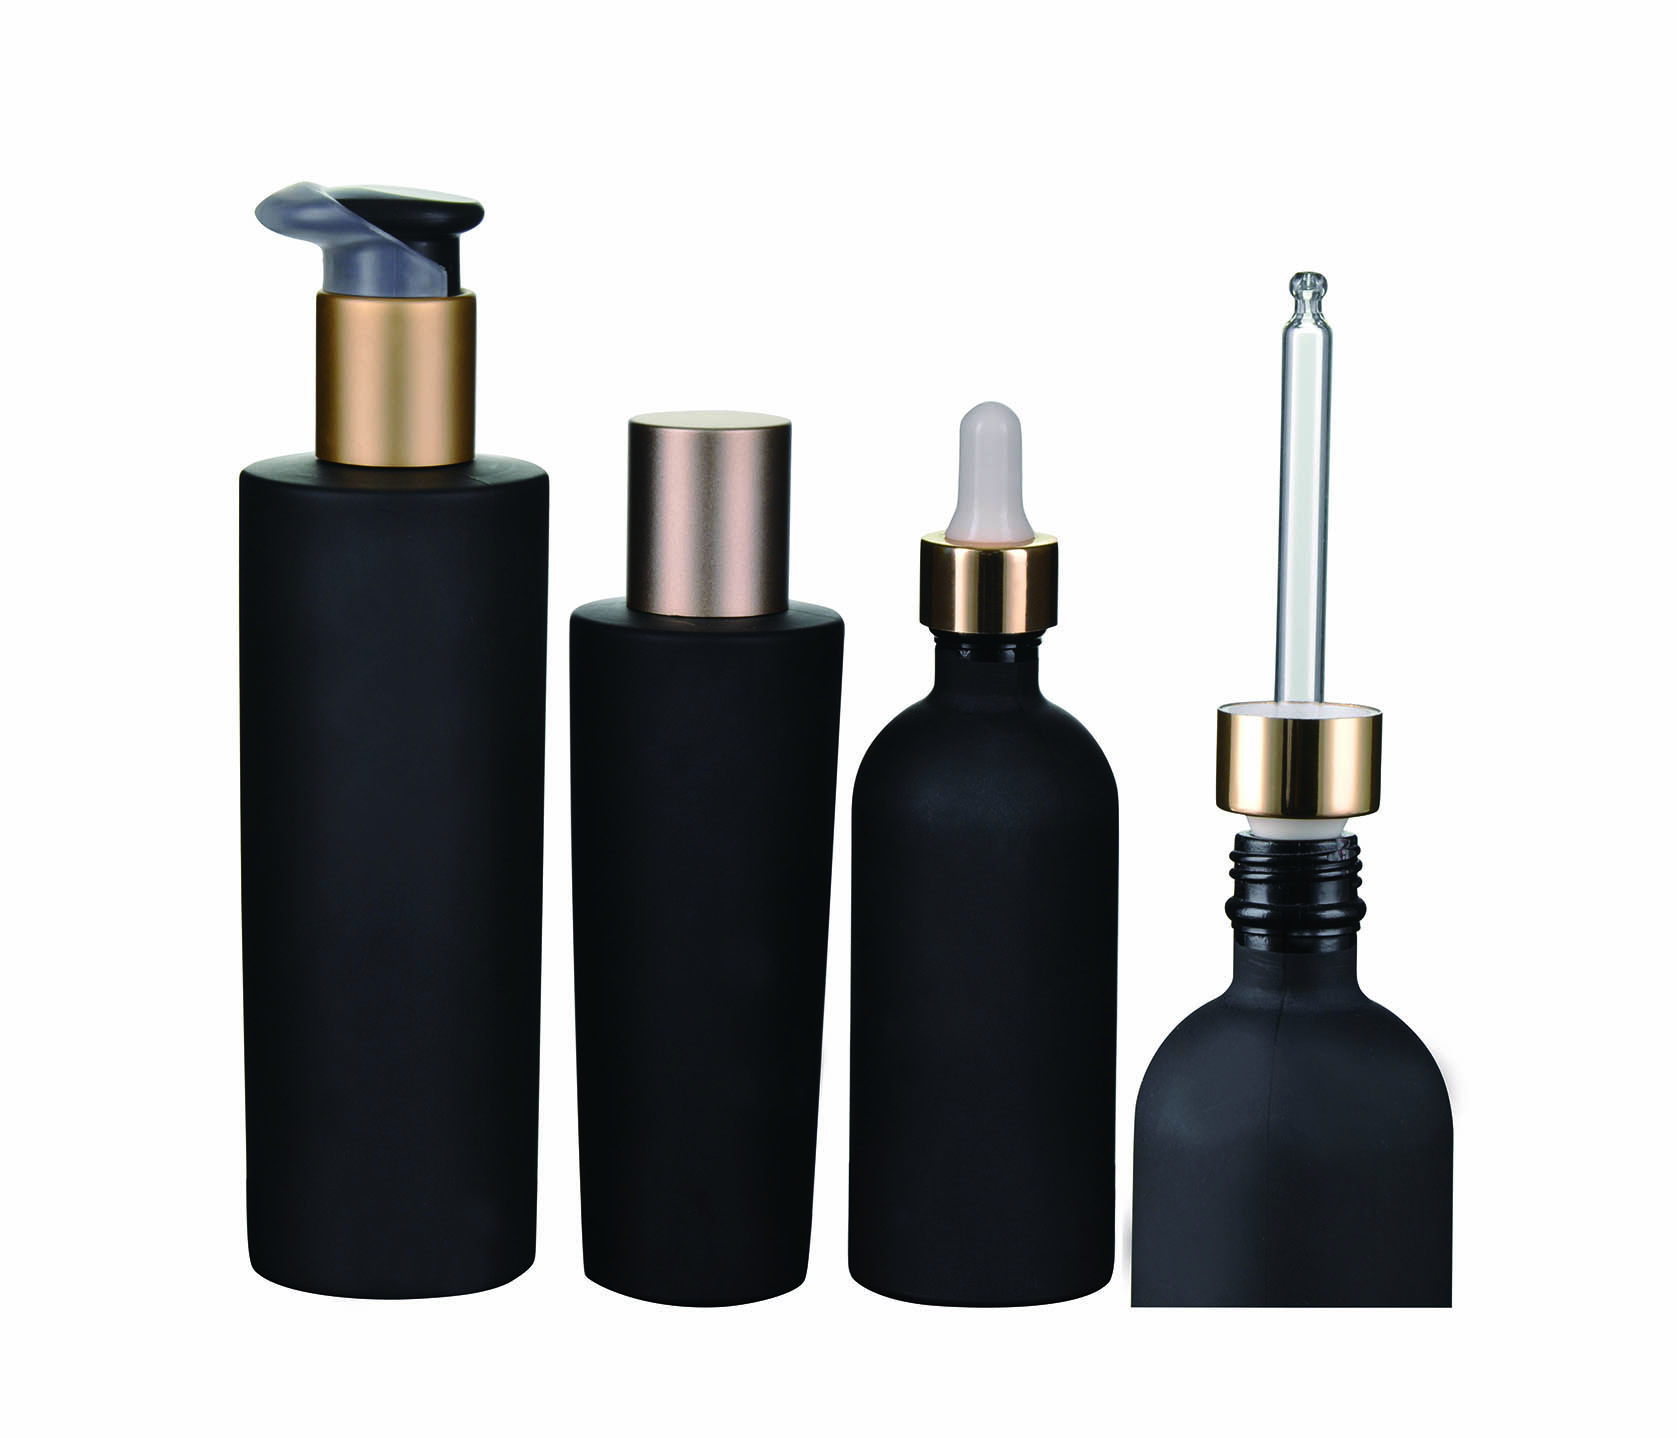 Dark violet glass bottle with pump/dropper